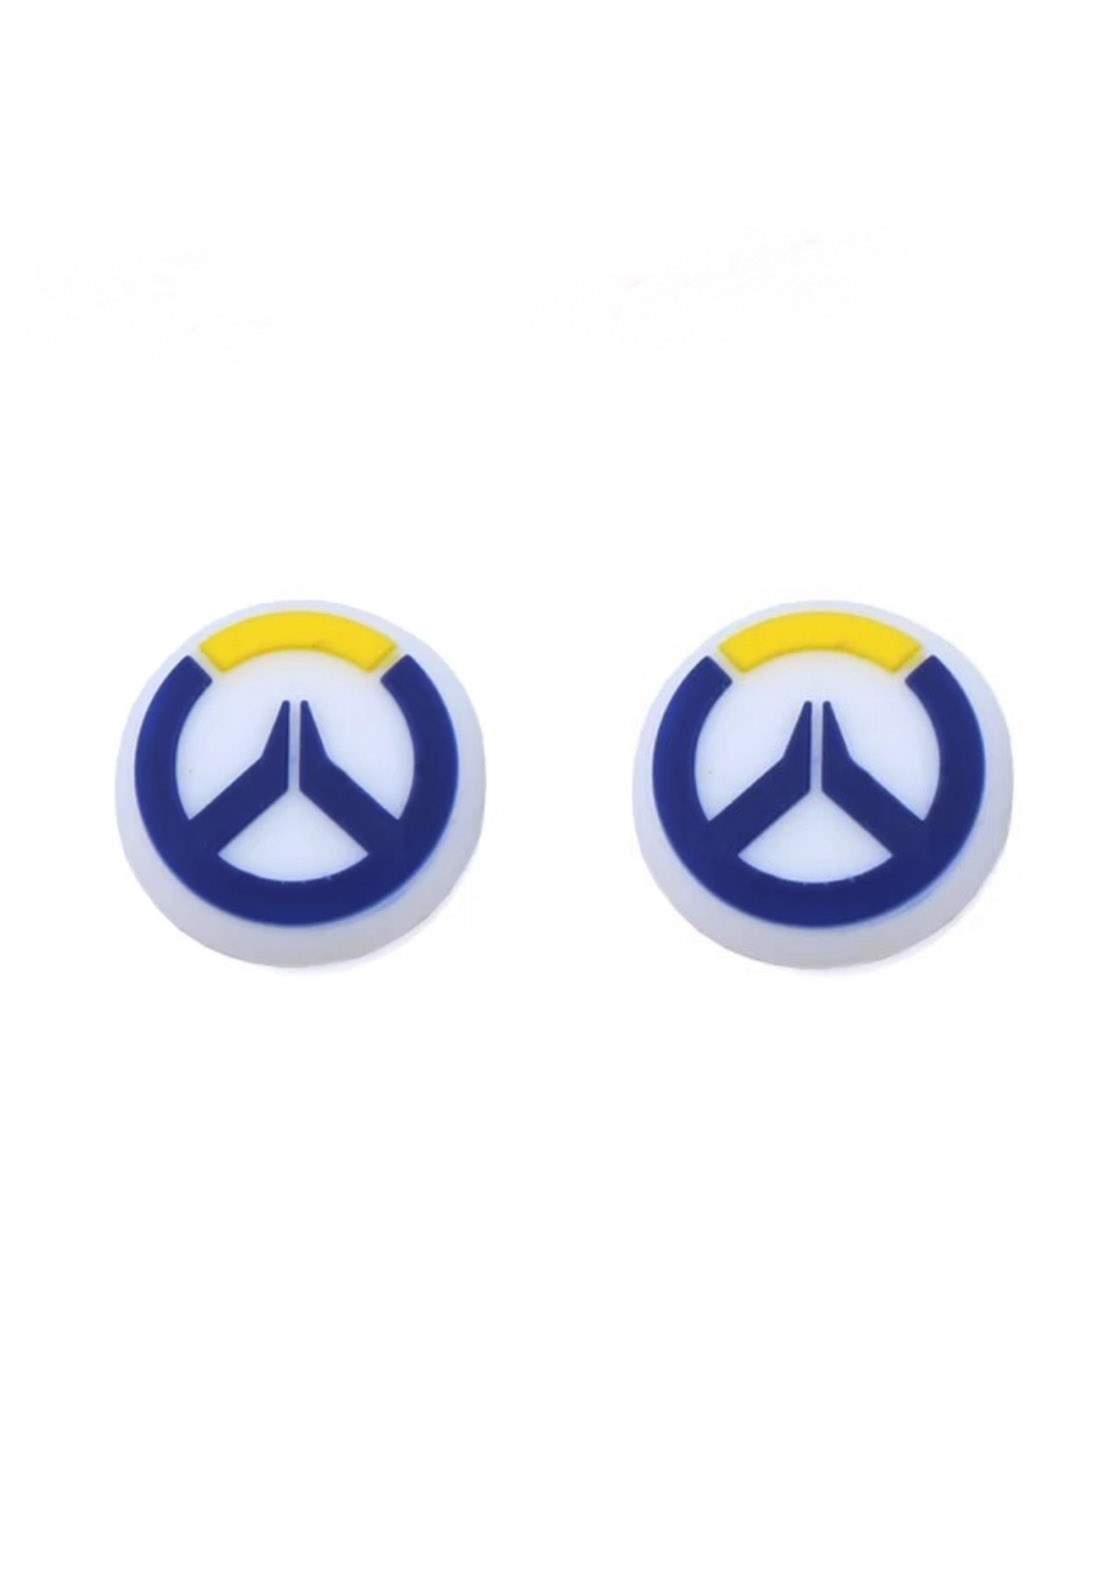 Thumb Grip for Playstation 4